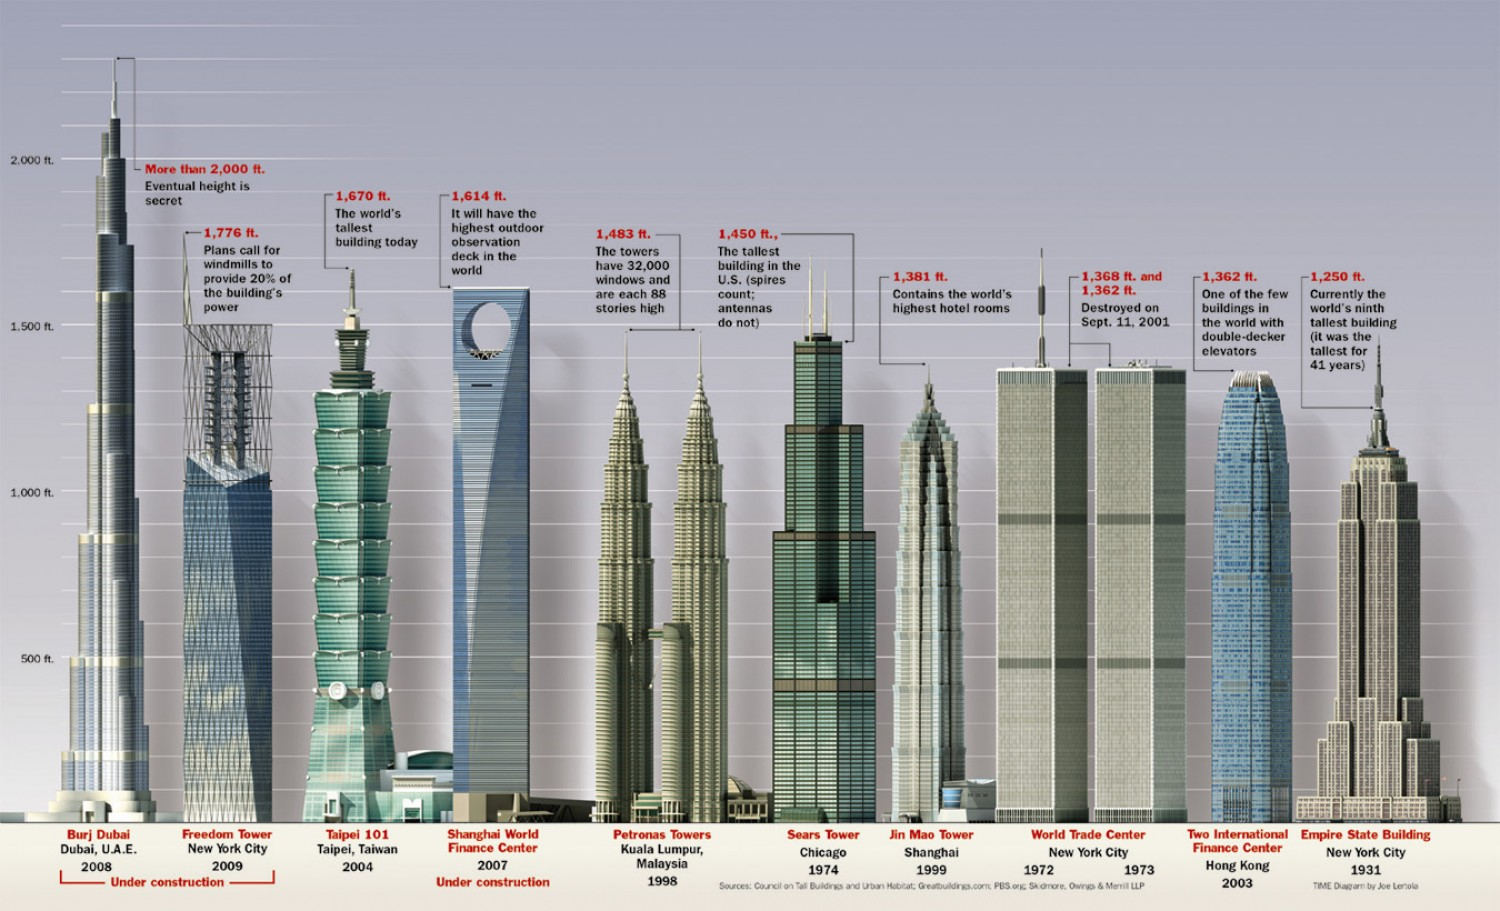 Tallest Buildings in the World.